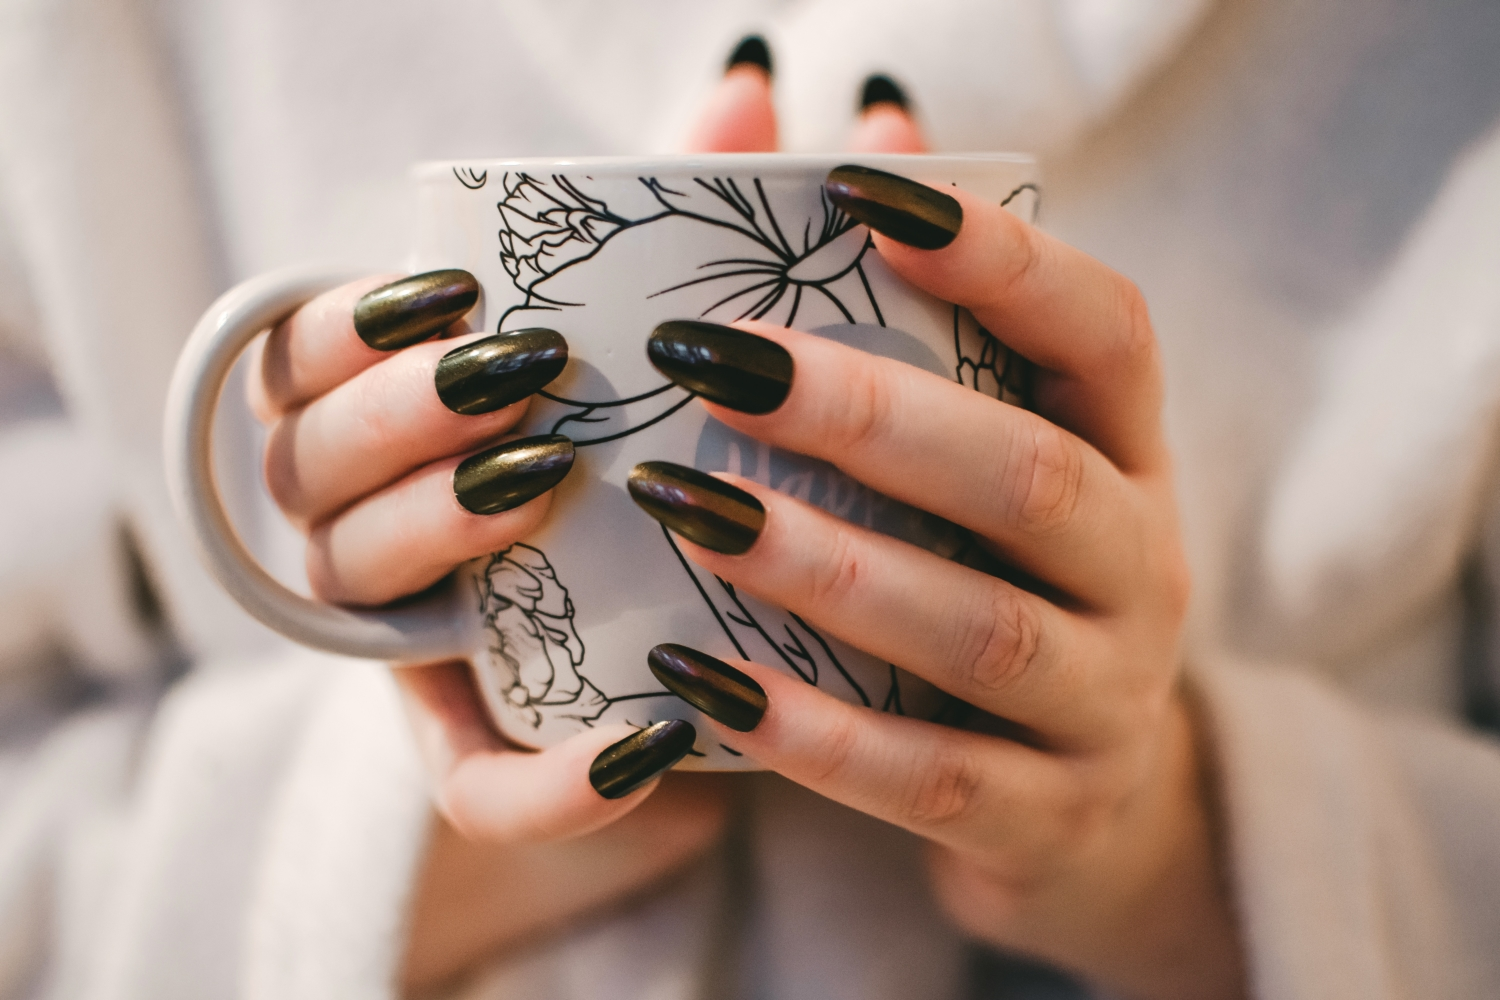 care your nails need | Nail care procedure